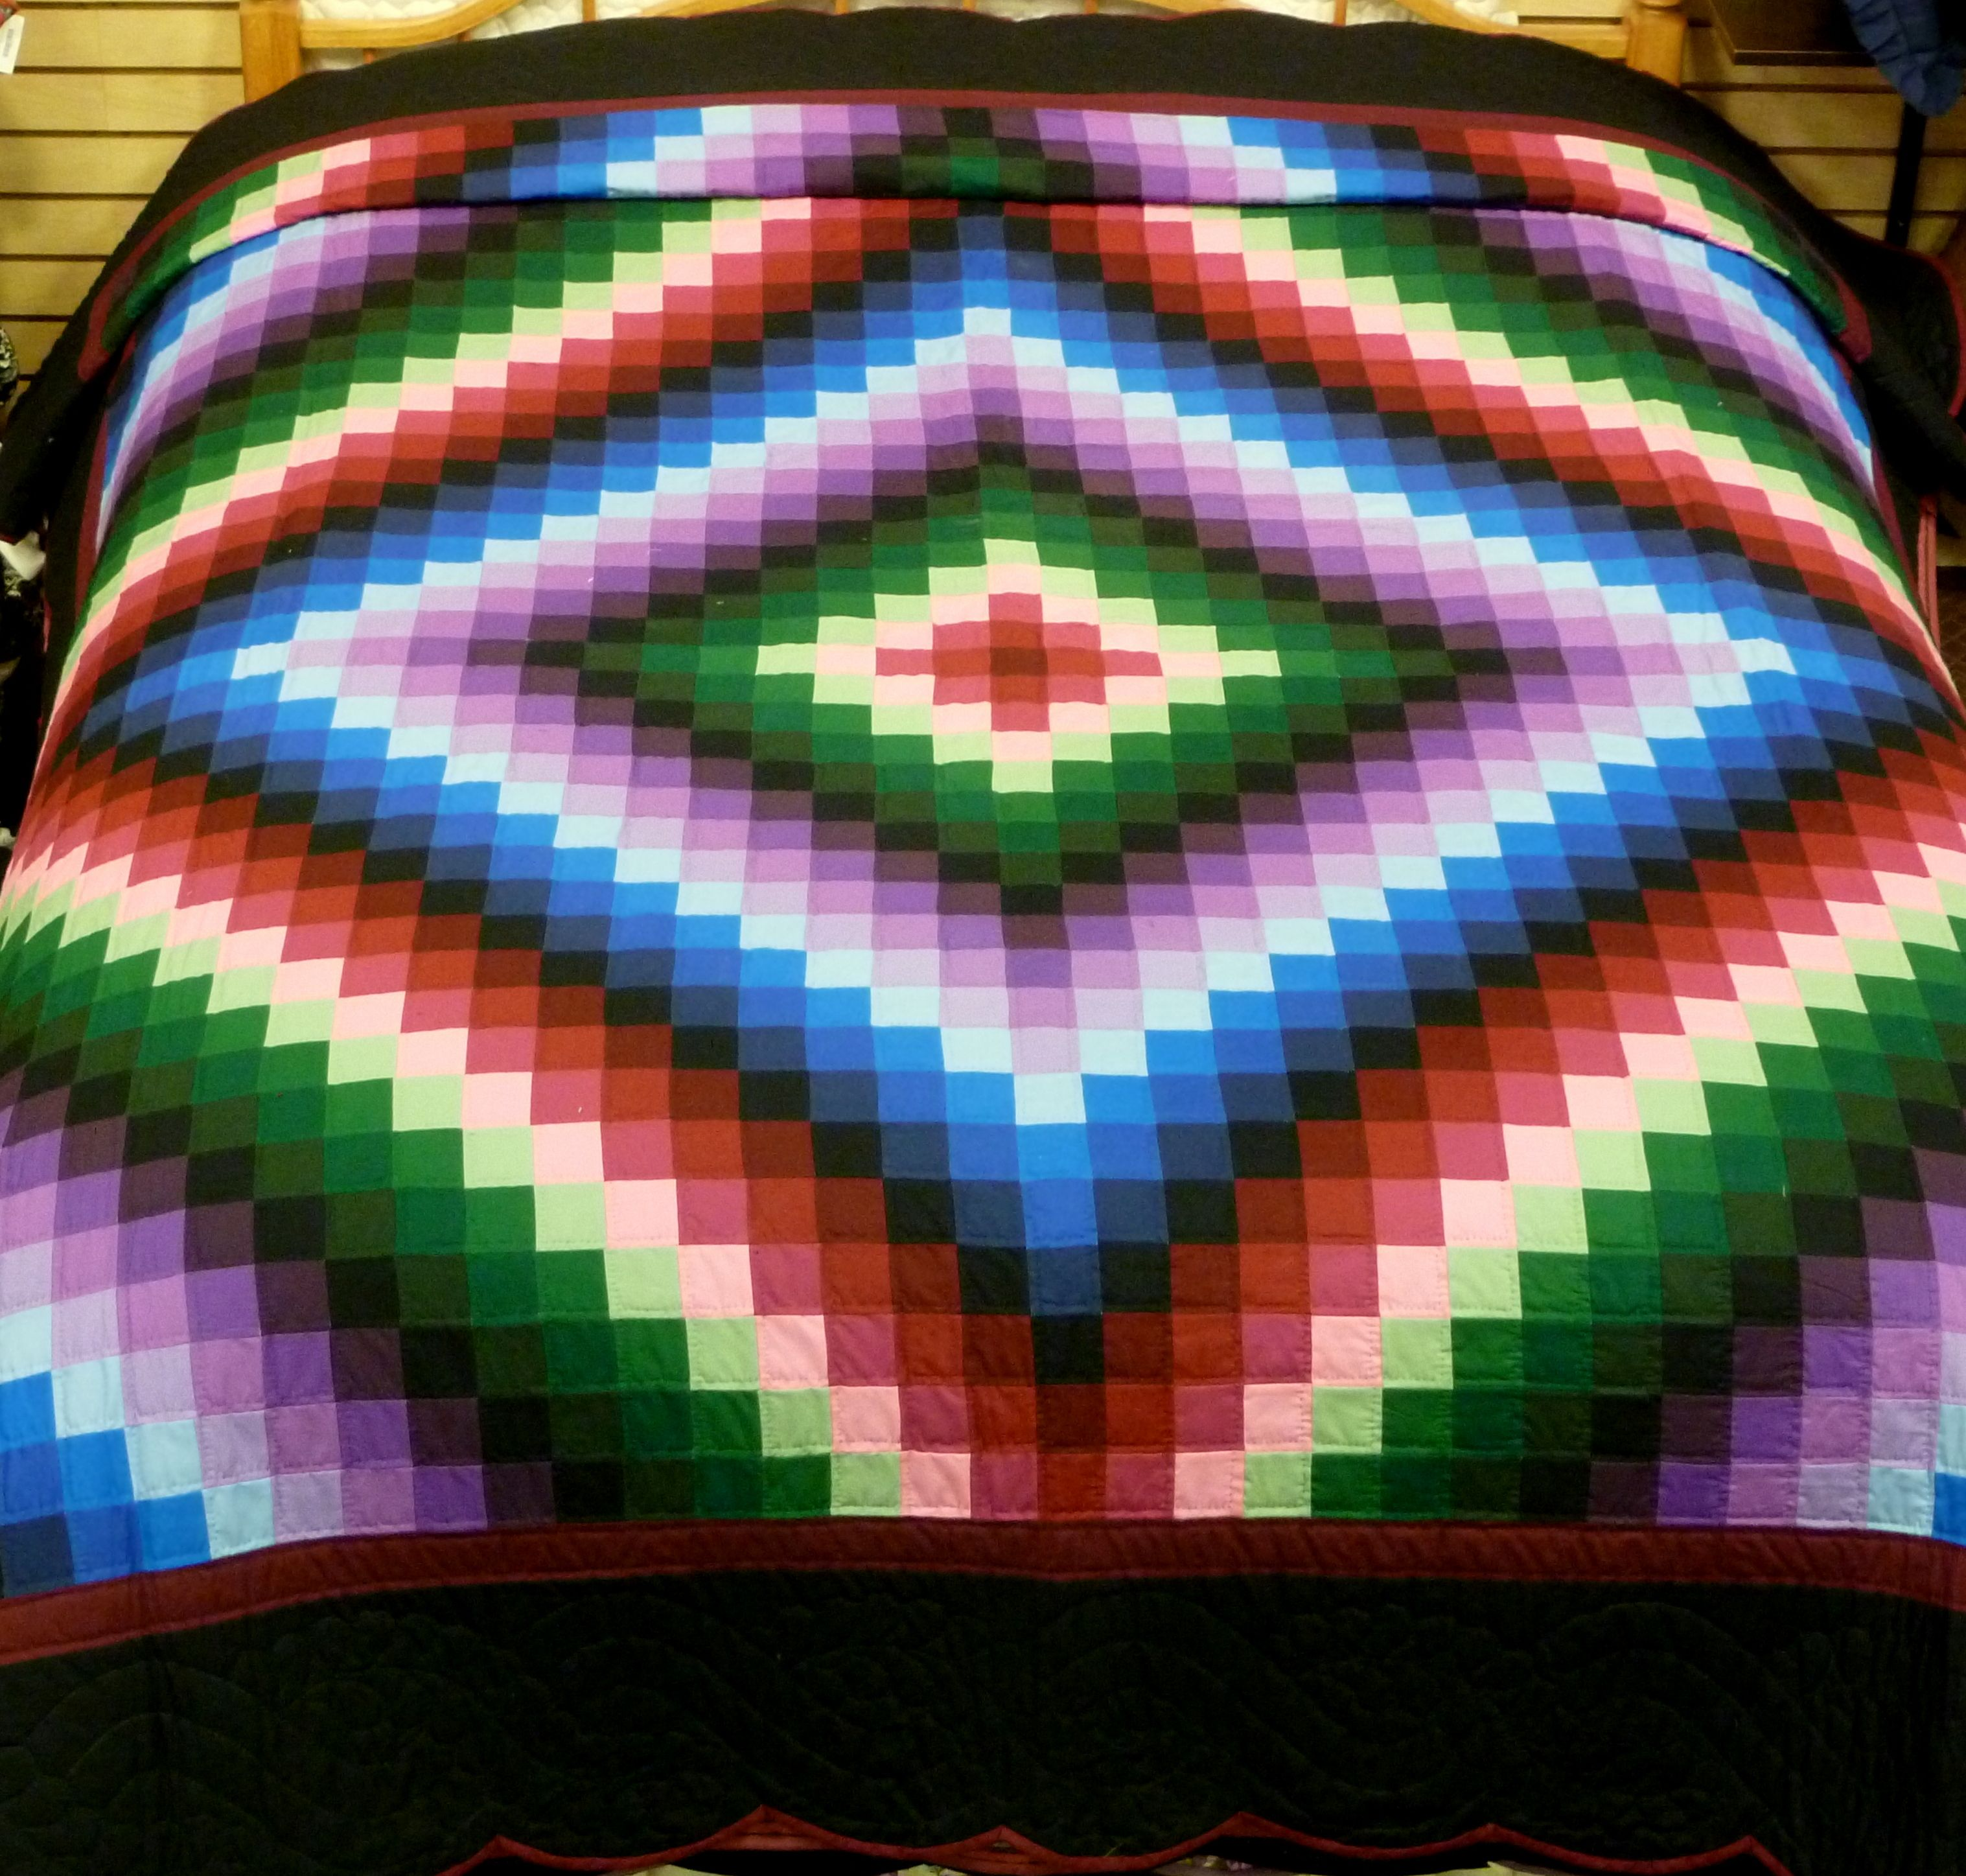 trip around the world quilt pattern - Google Search | quilts ...